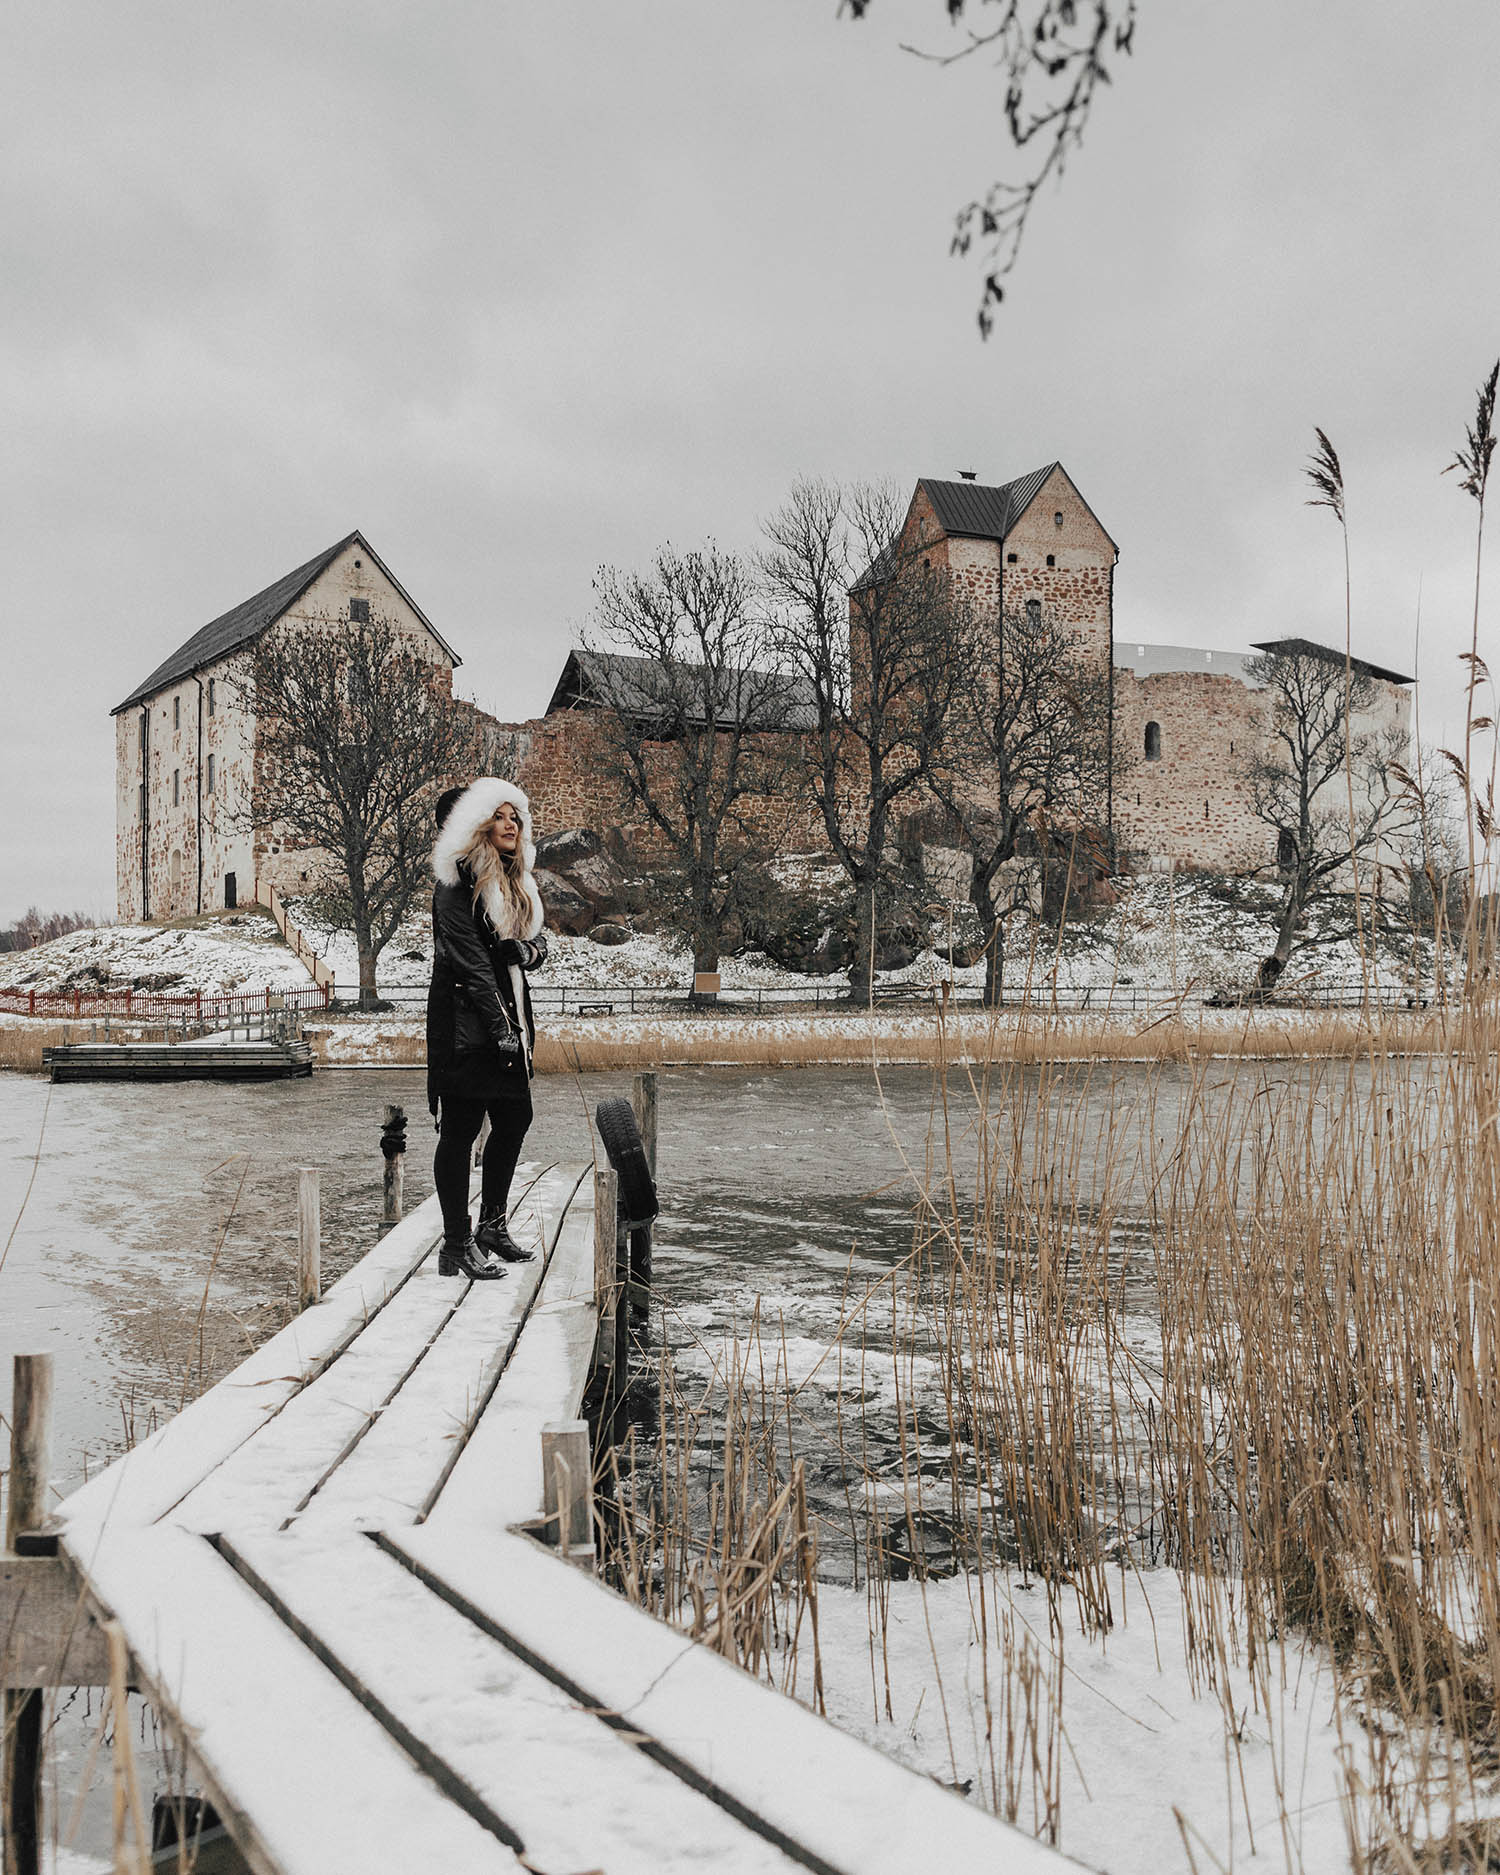 Visit Kastelholm Castle |Things to do in the Åland Islands